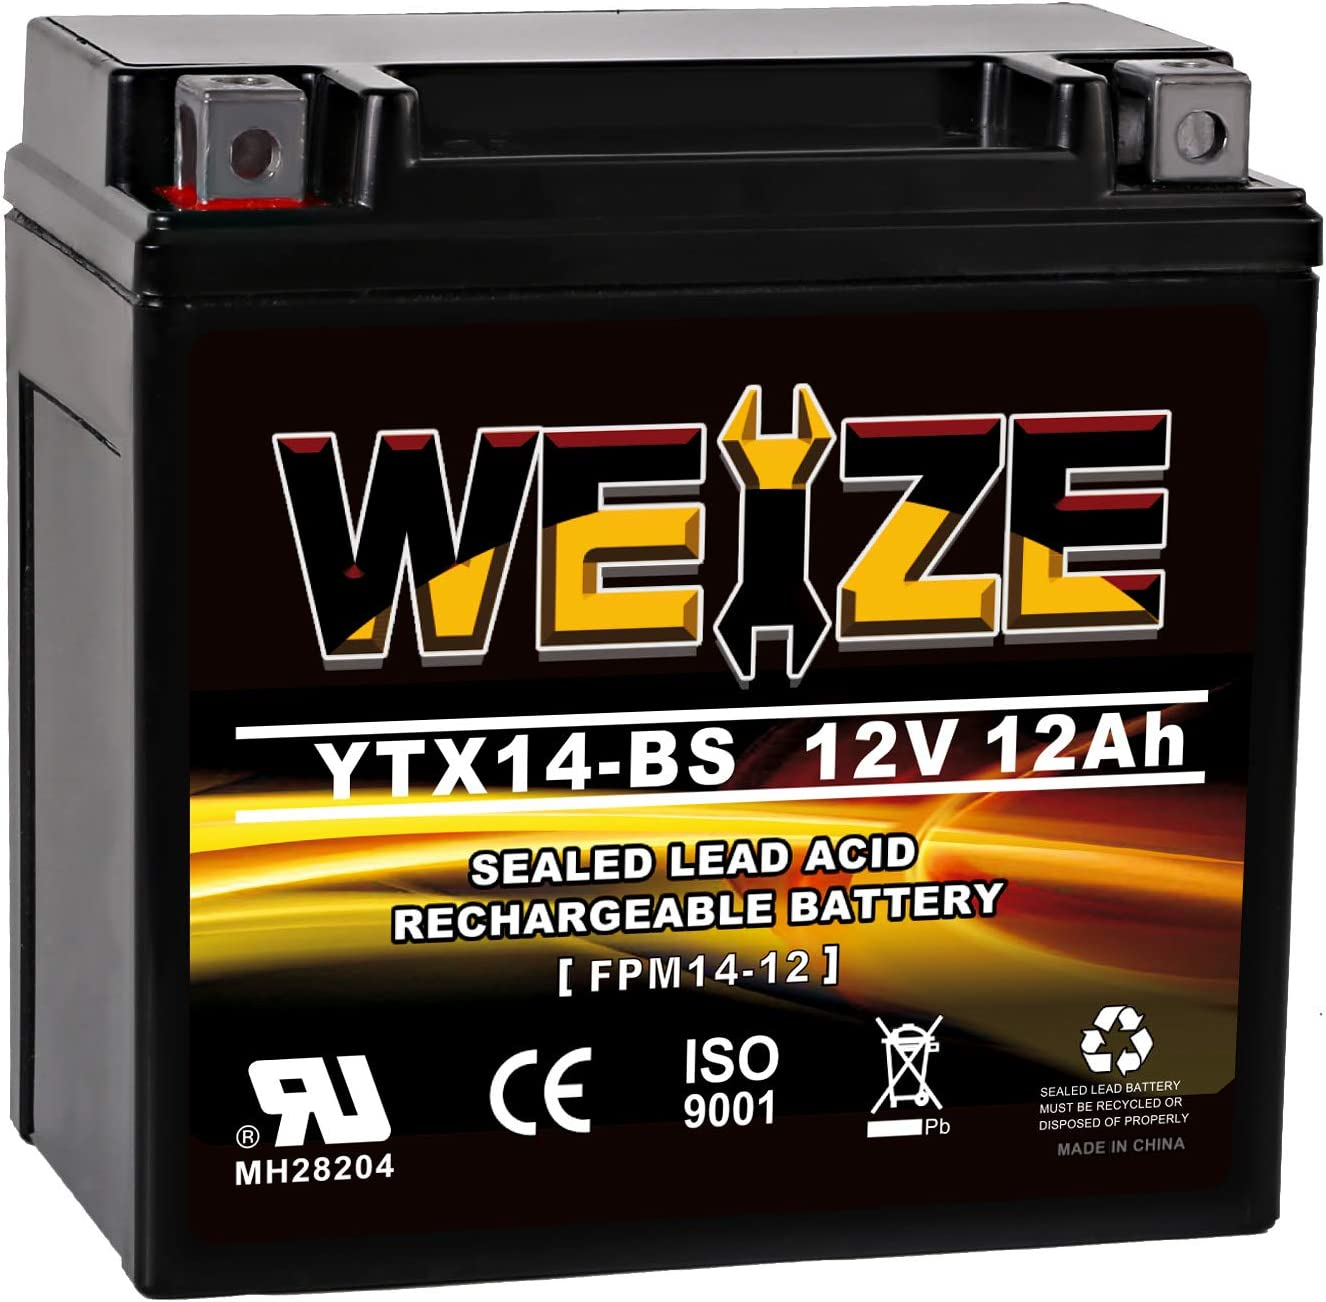 Weize YTX14 BS ATV Battery High Performance - Maintenance Free - Sealed AGM YTX14-BS Motorcycle Battery For Honda Suzuki Kawasaki Yamaha scooter snowmobile